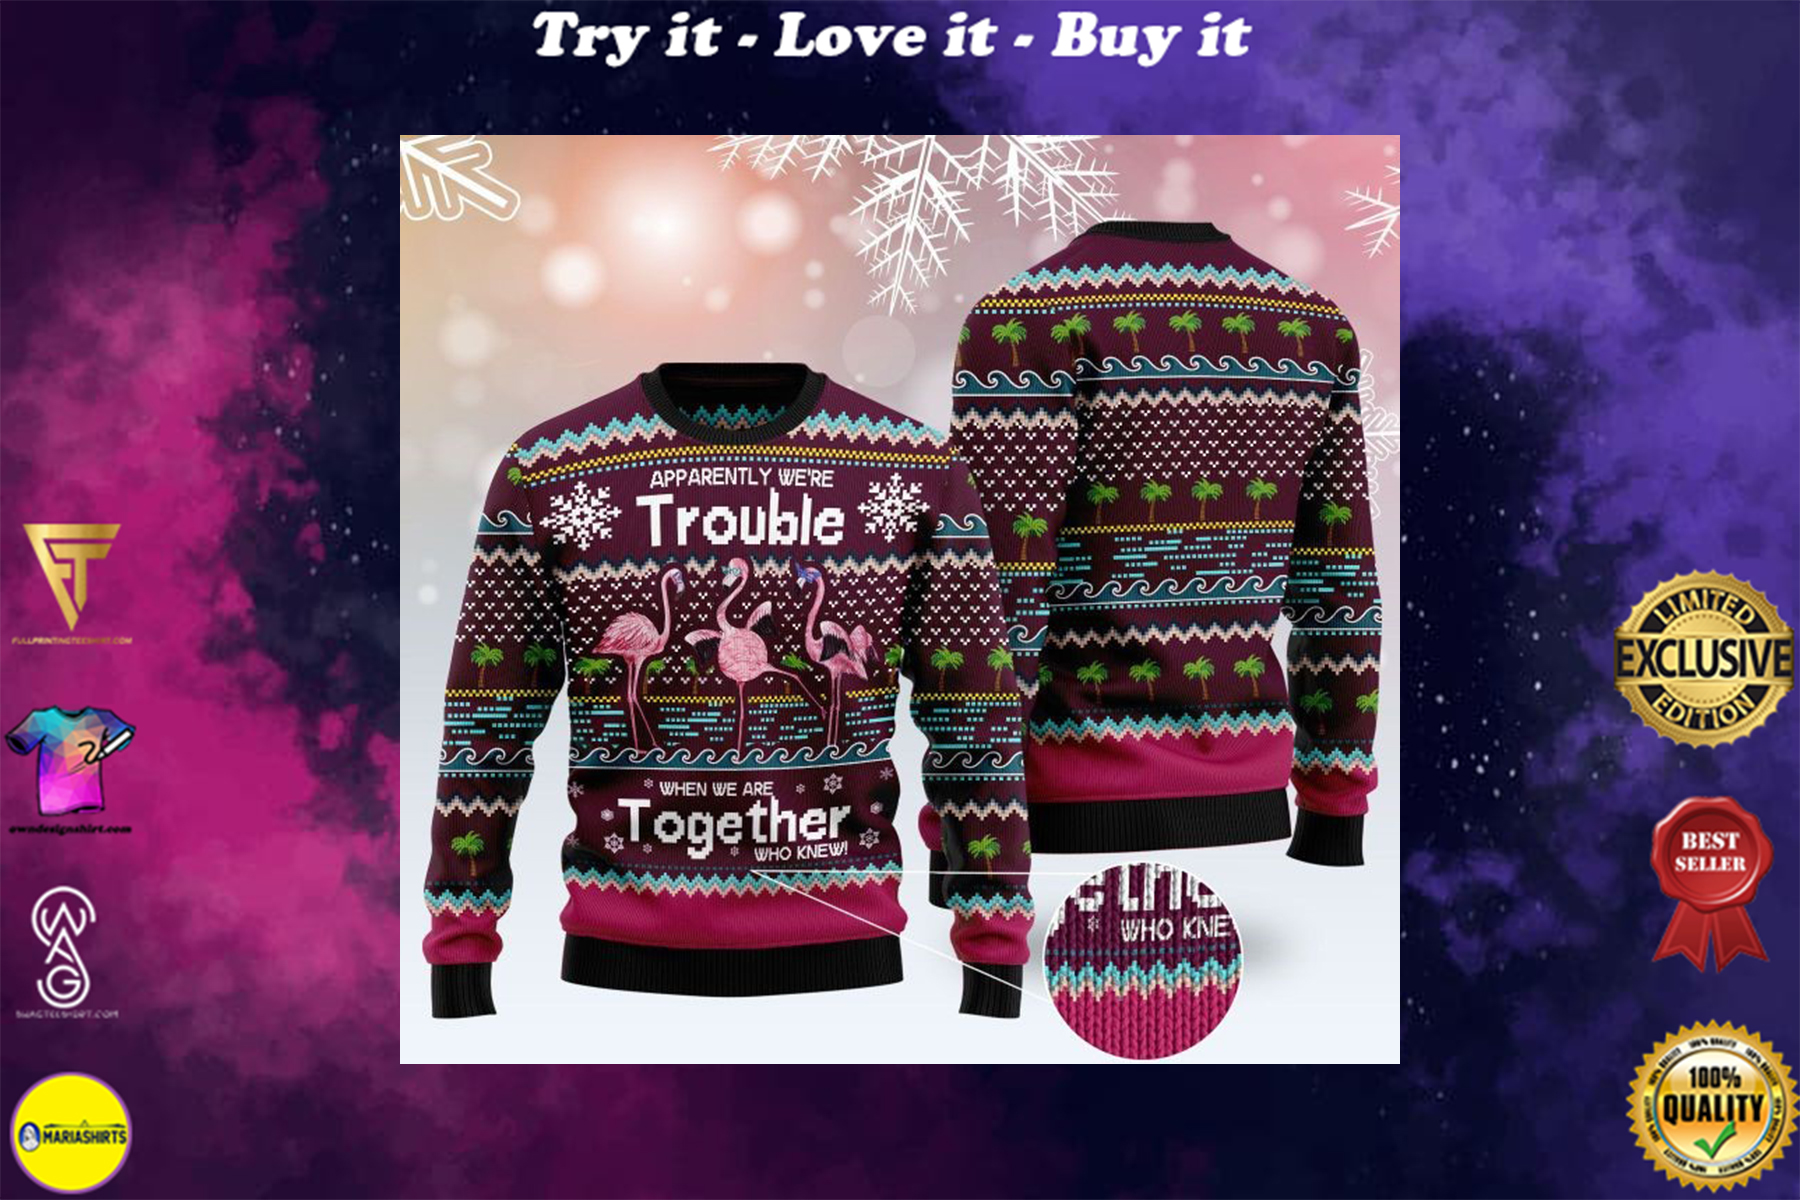 apparently were trouble when we are together who knew ugly sweater